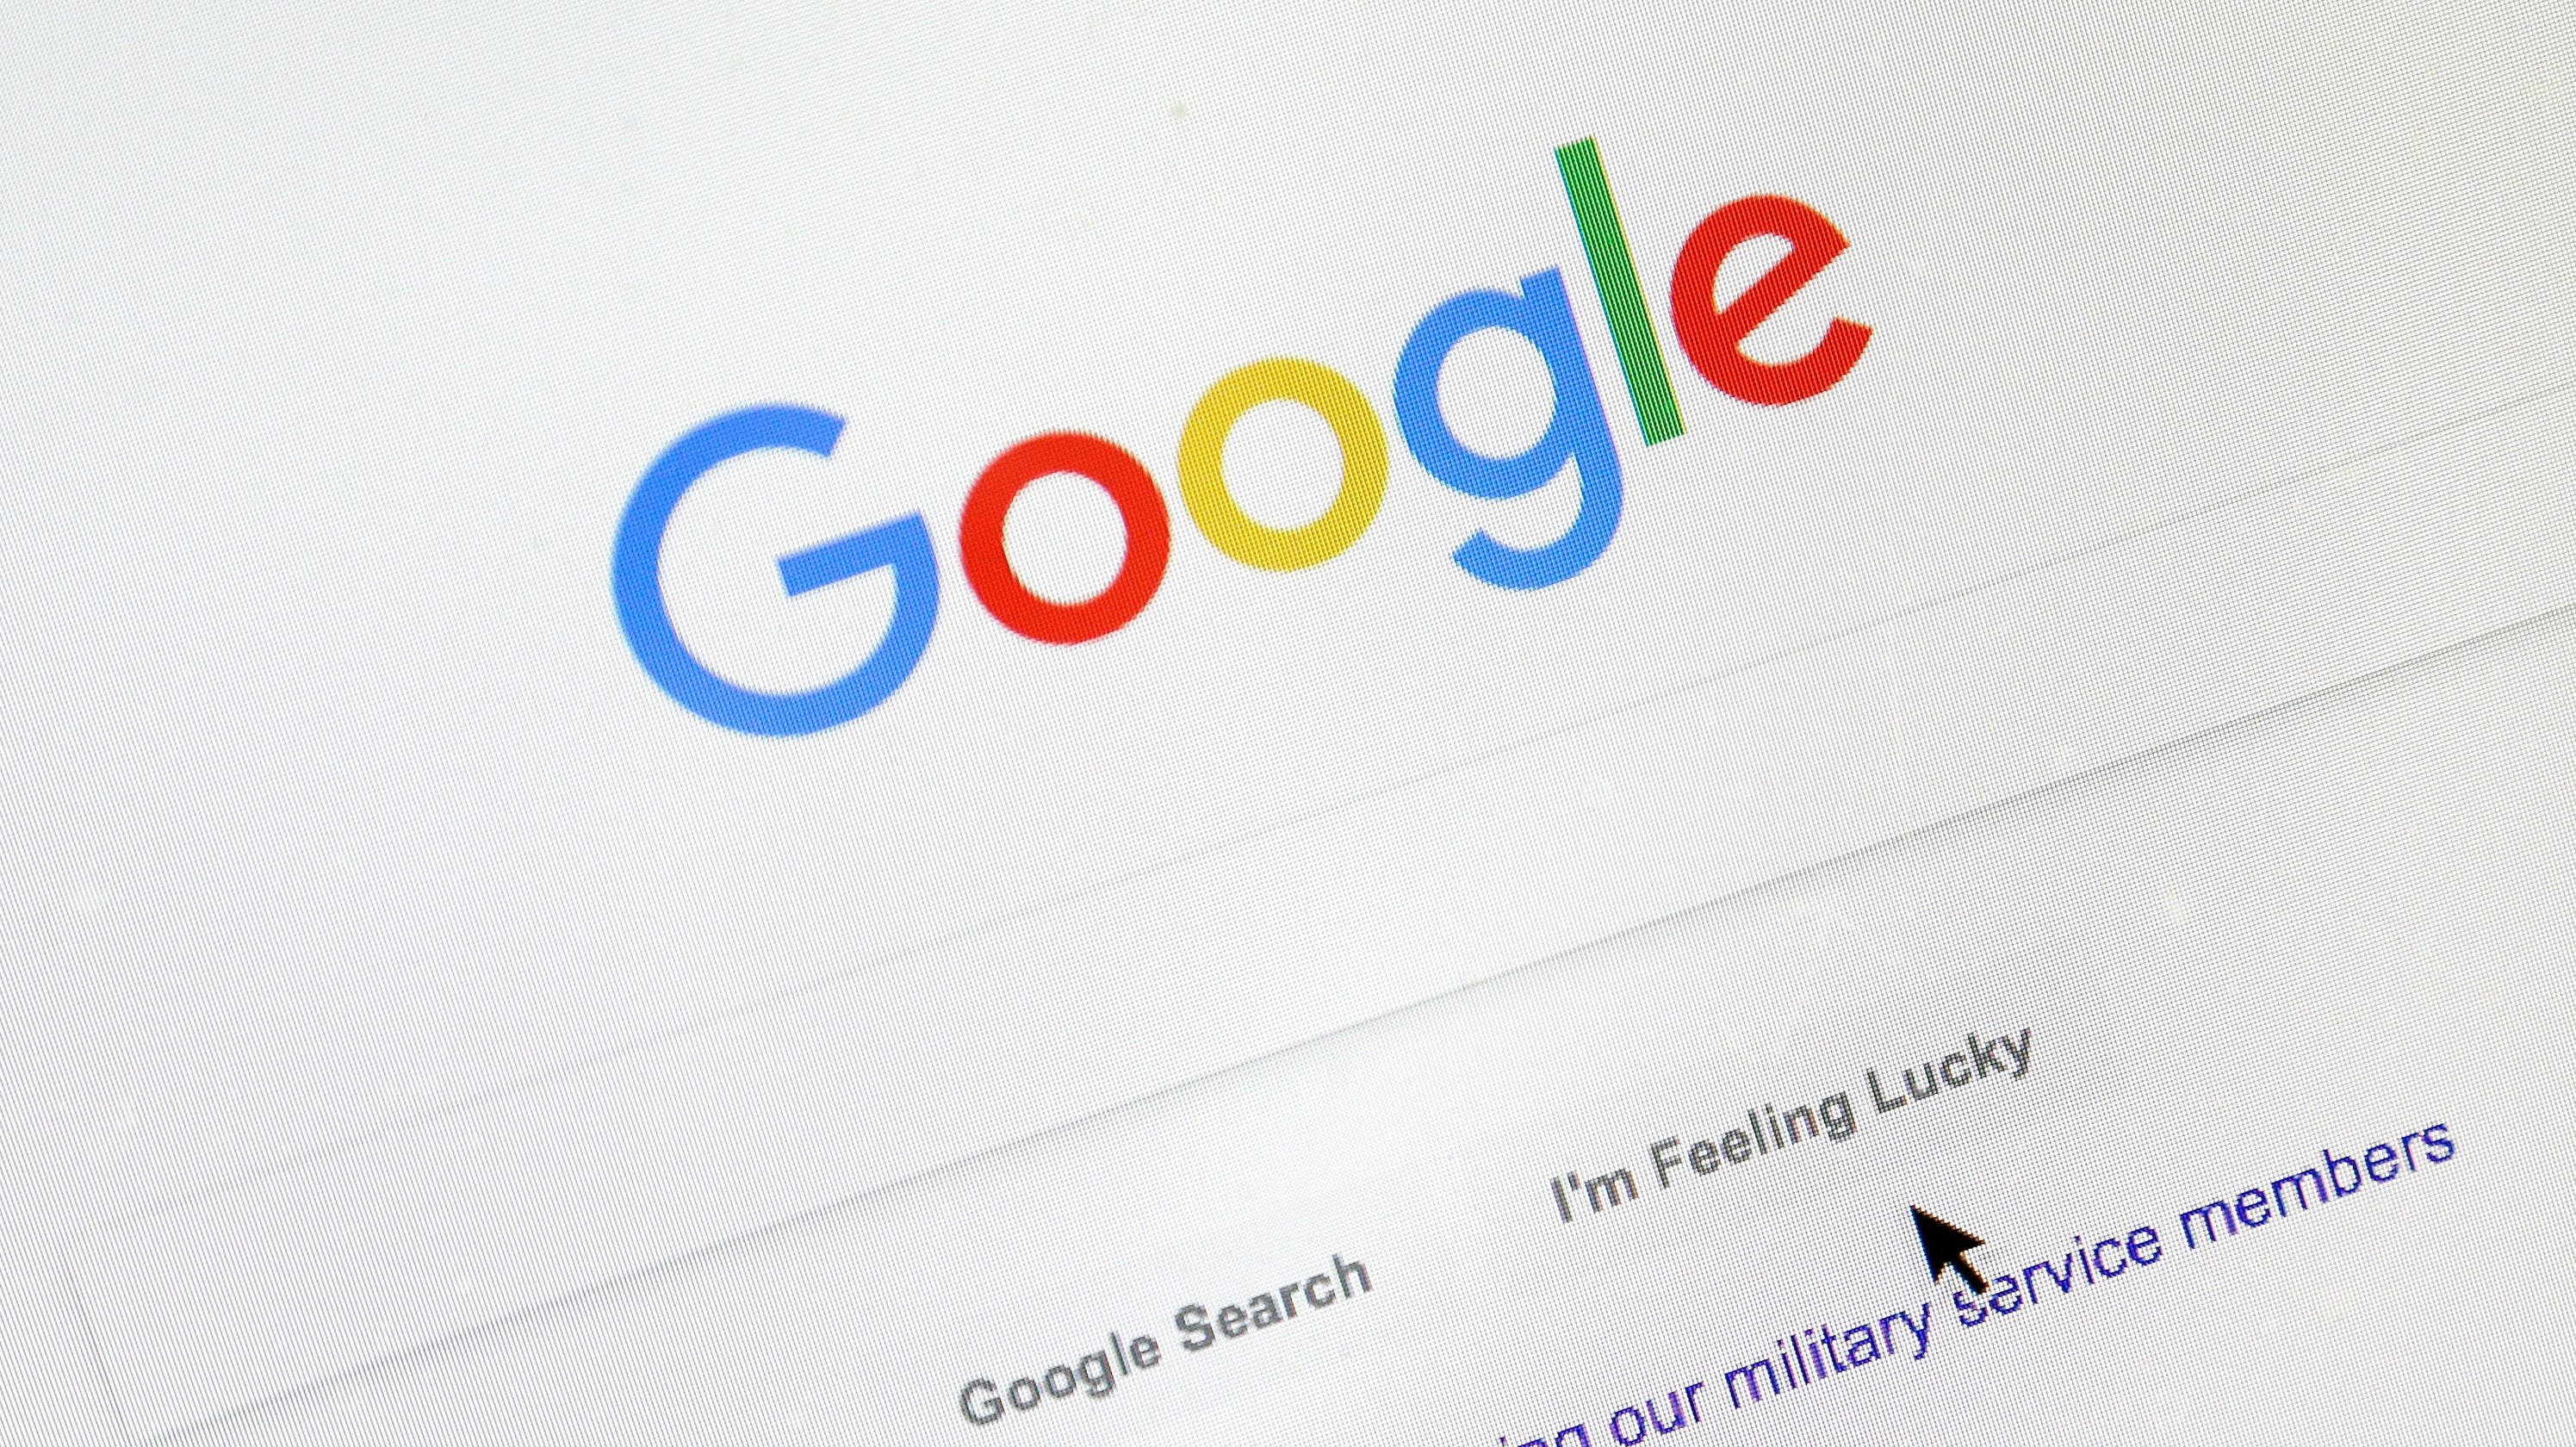 Google banned more than 2.3 billion ads in one year